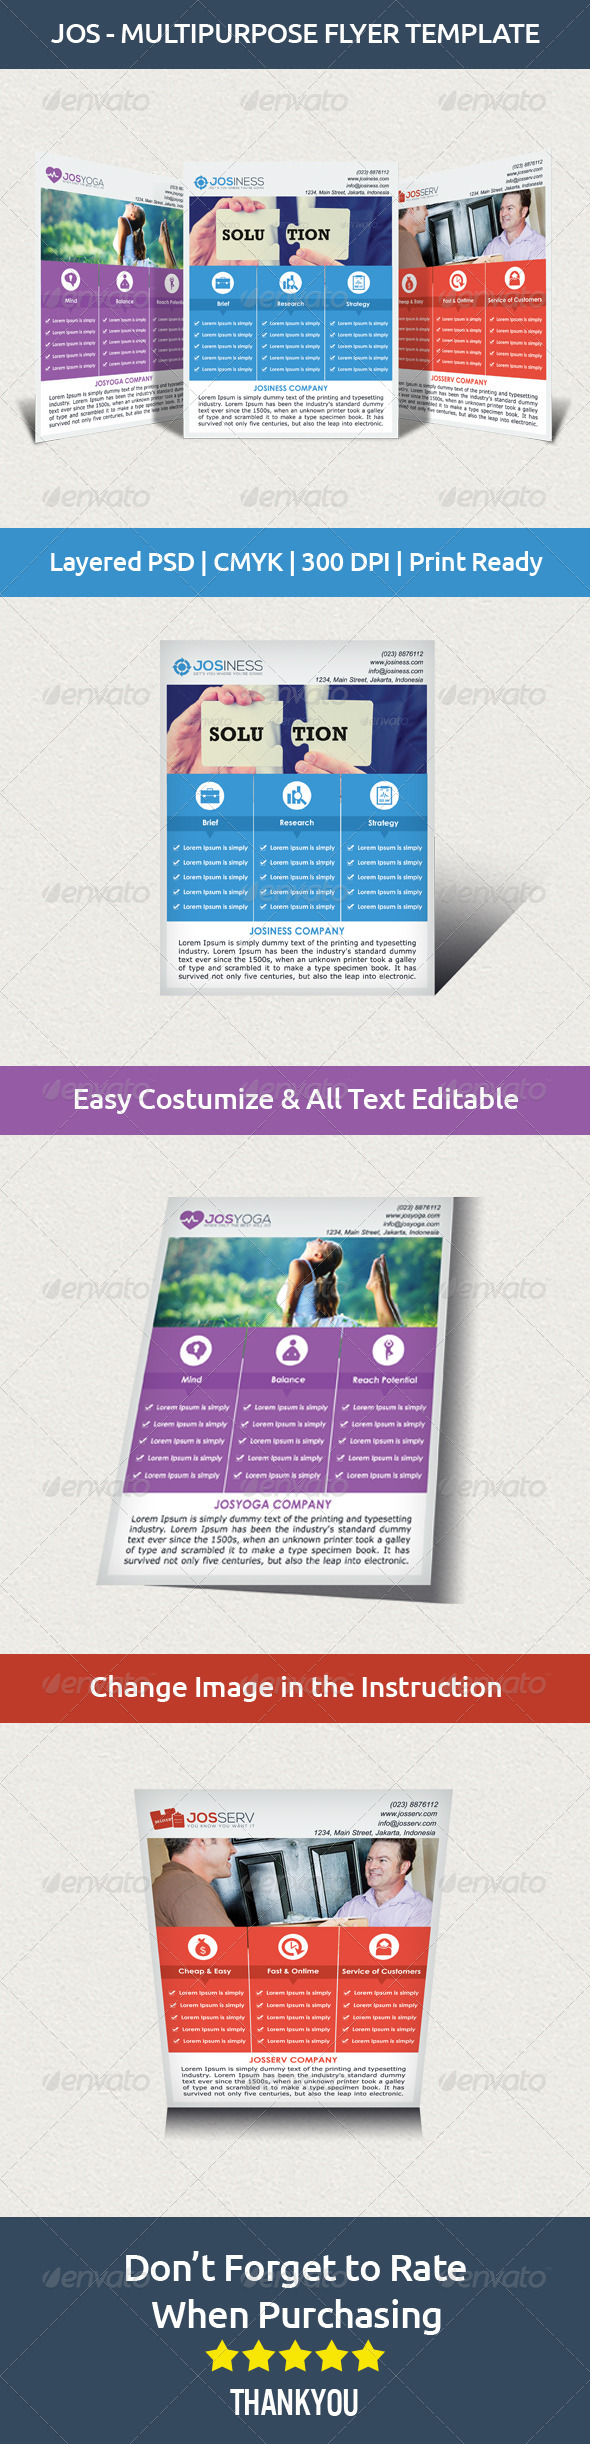 JOS Multipurpose Flyer Template